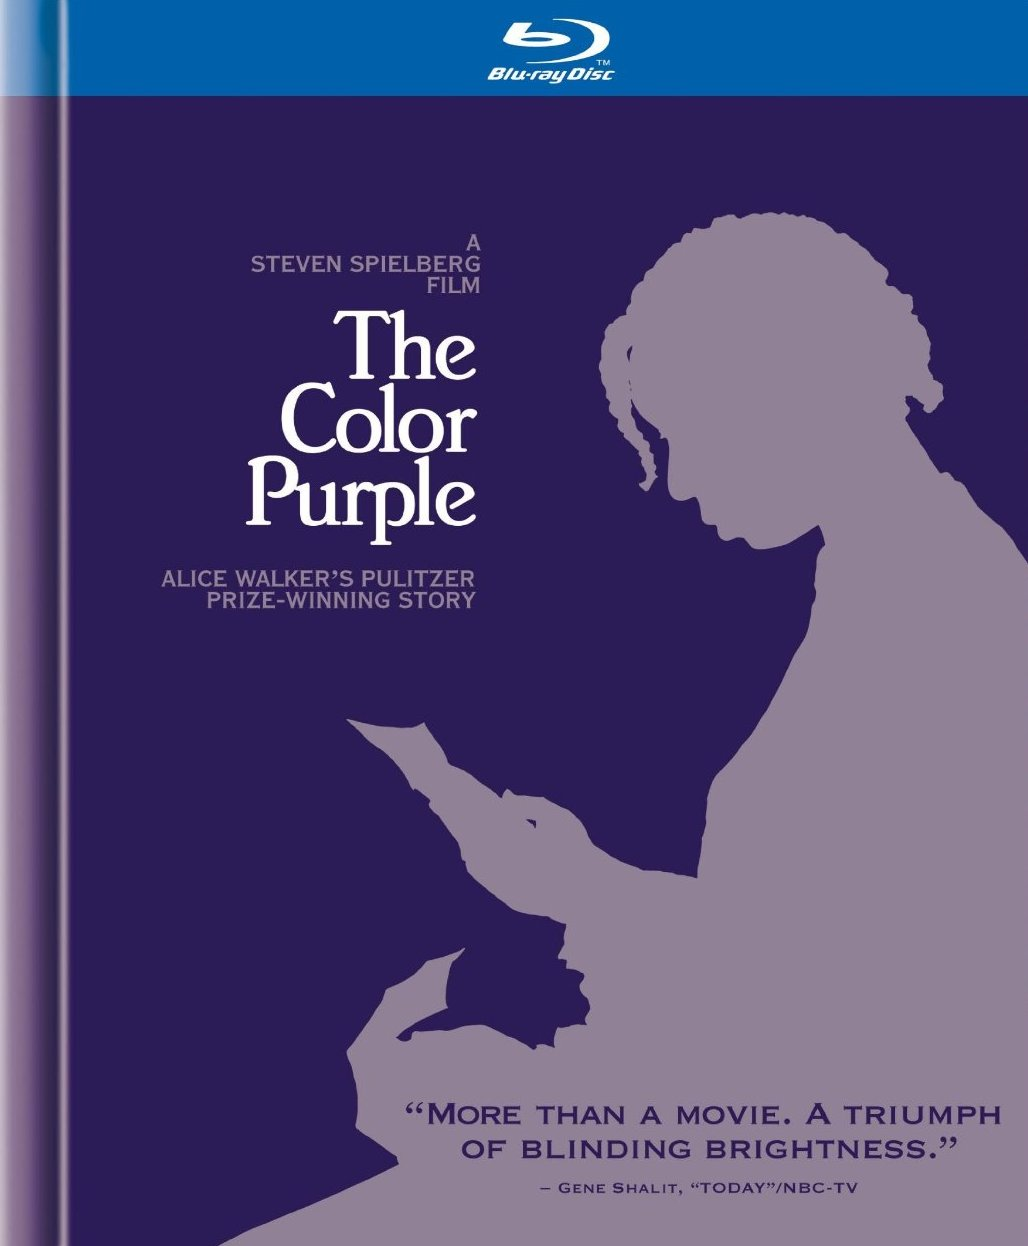 the strength of love in the color purple The power of colors cannot be  careers, vibrant, provoking, exciting, strength,  compassionate love, wisdom, void of ego purple is a color that people may.